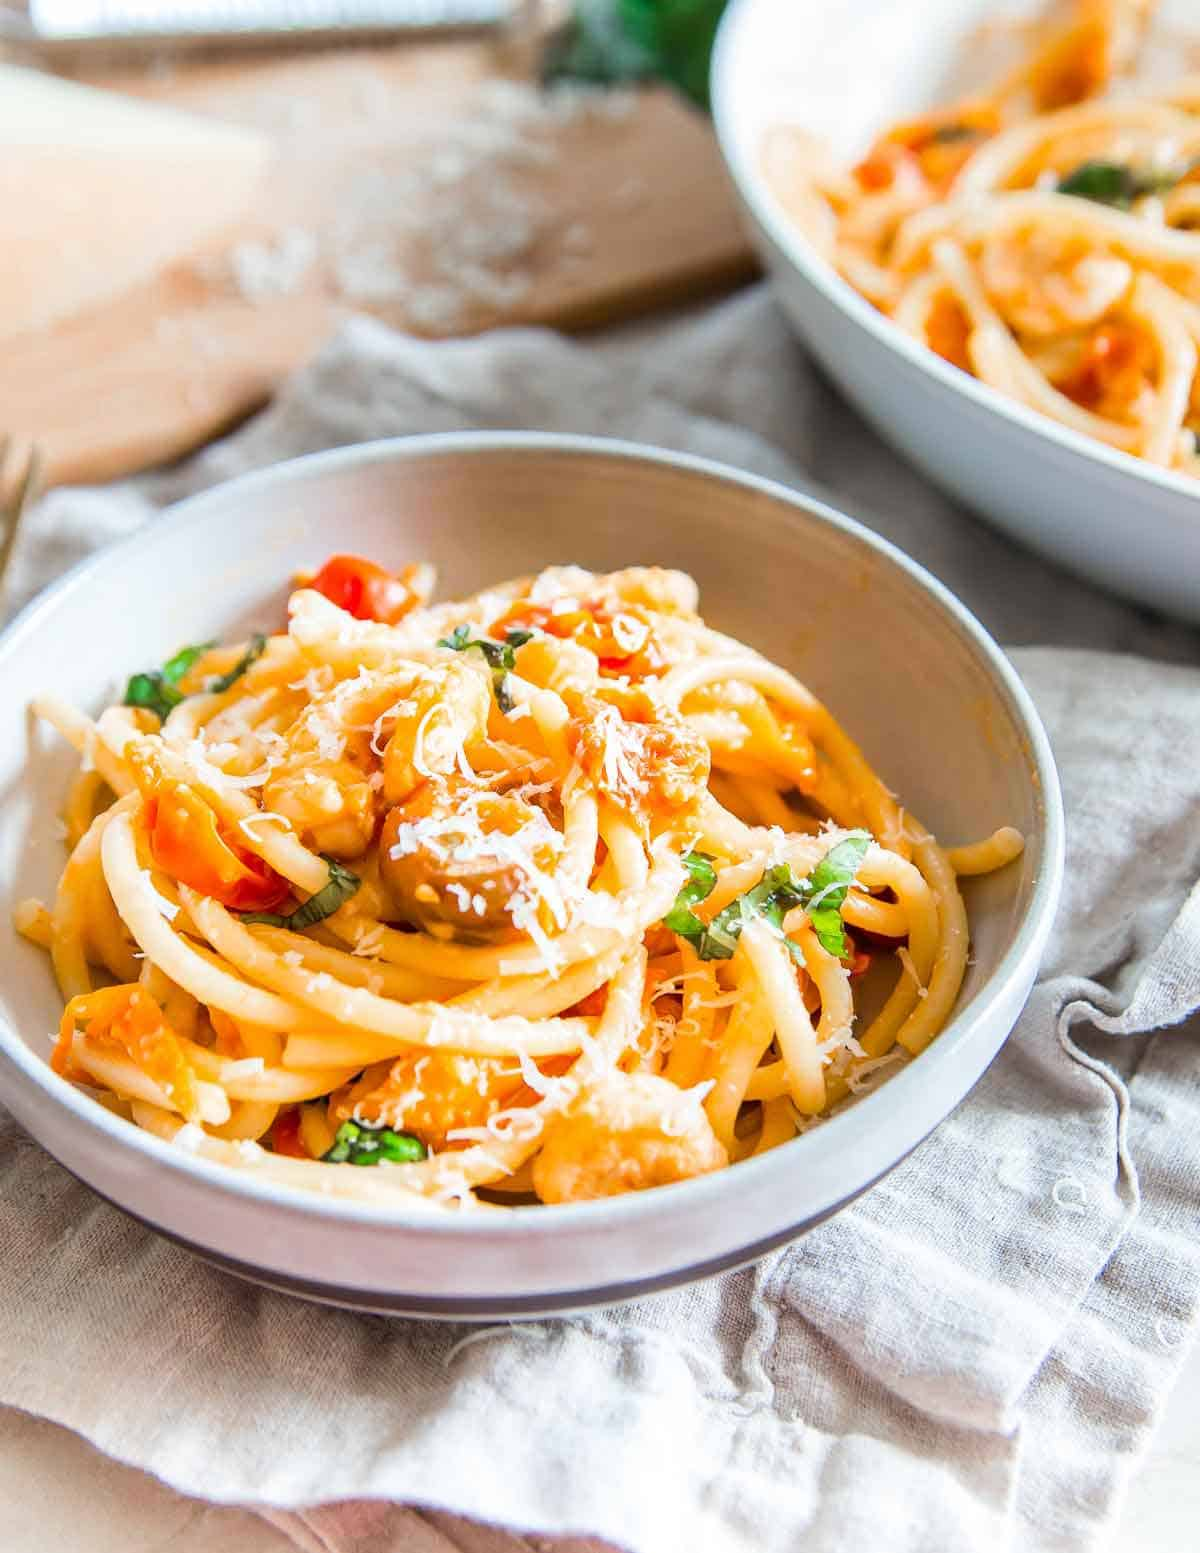 Looking for an easy weeknight meal? Grab some frozen shrimp, cherry tomatoes and a box of pasta from the pantry for this bucatini with garlic shrimp recipe.